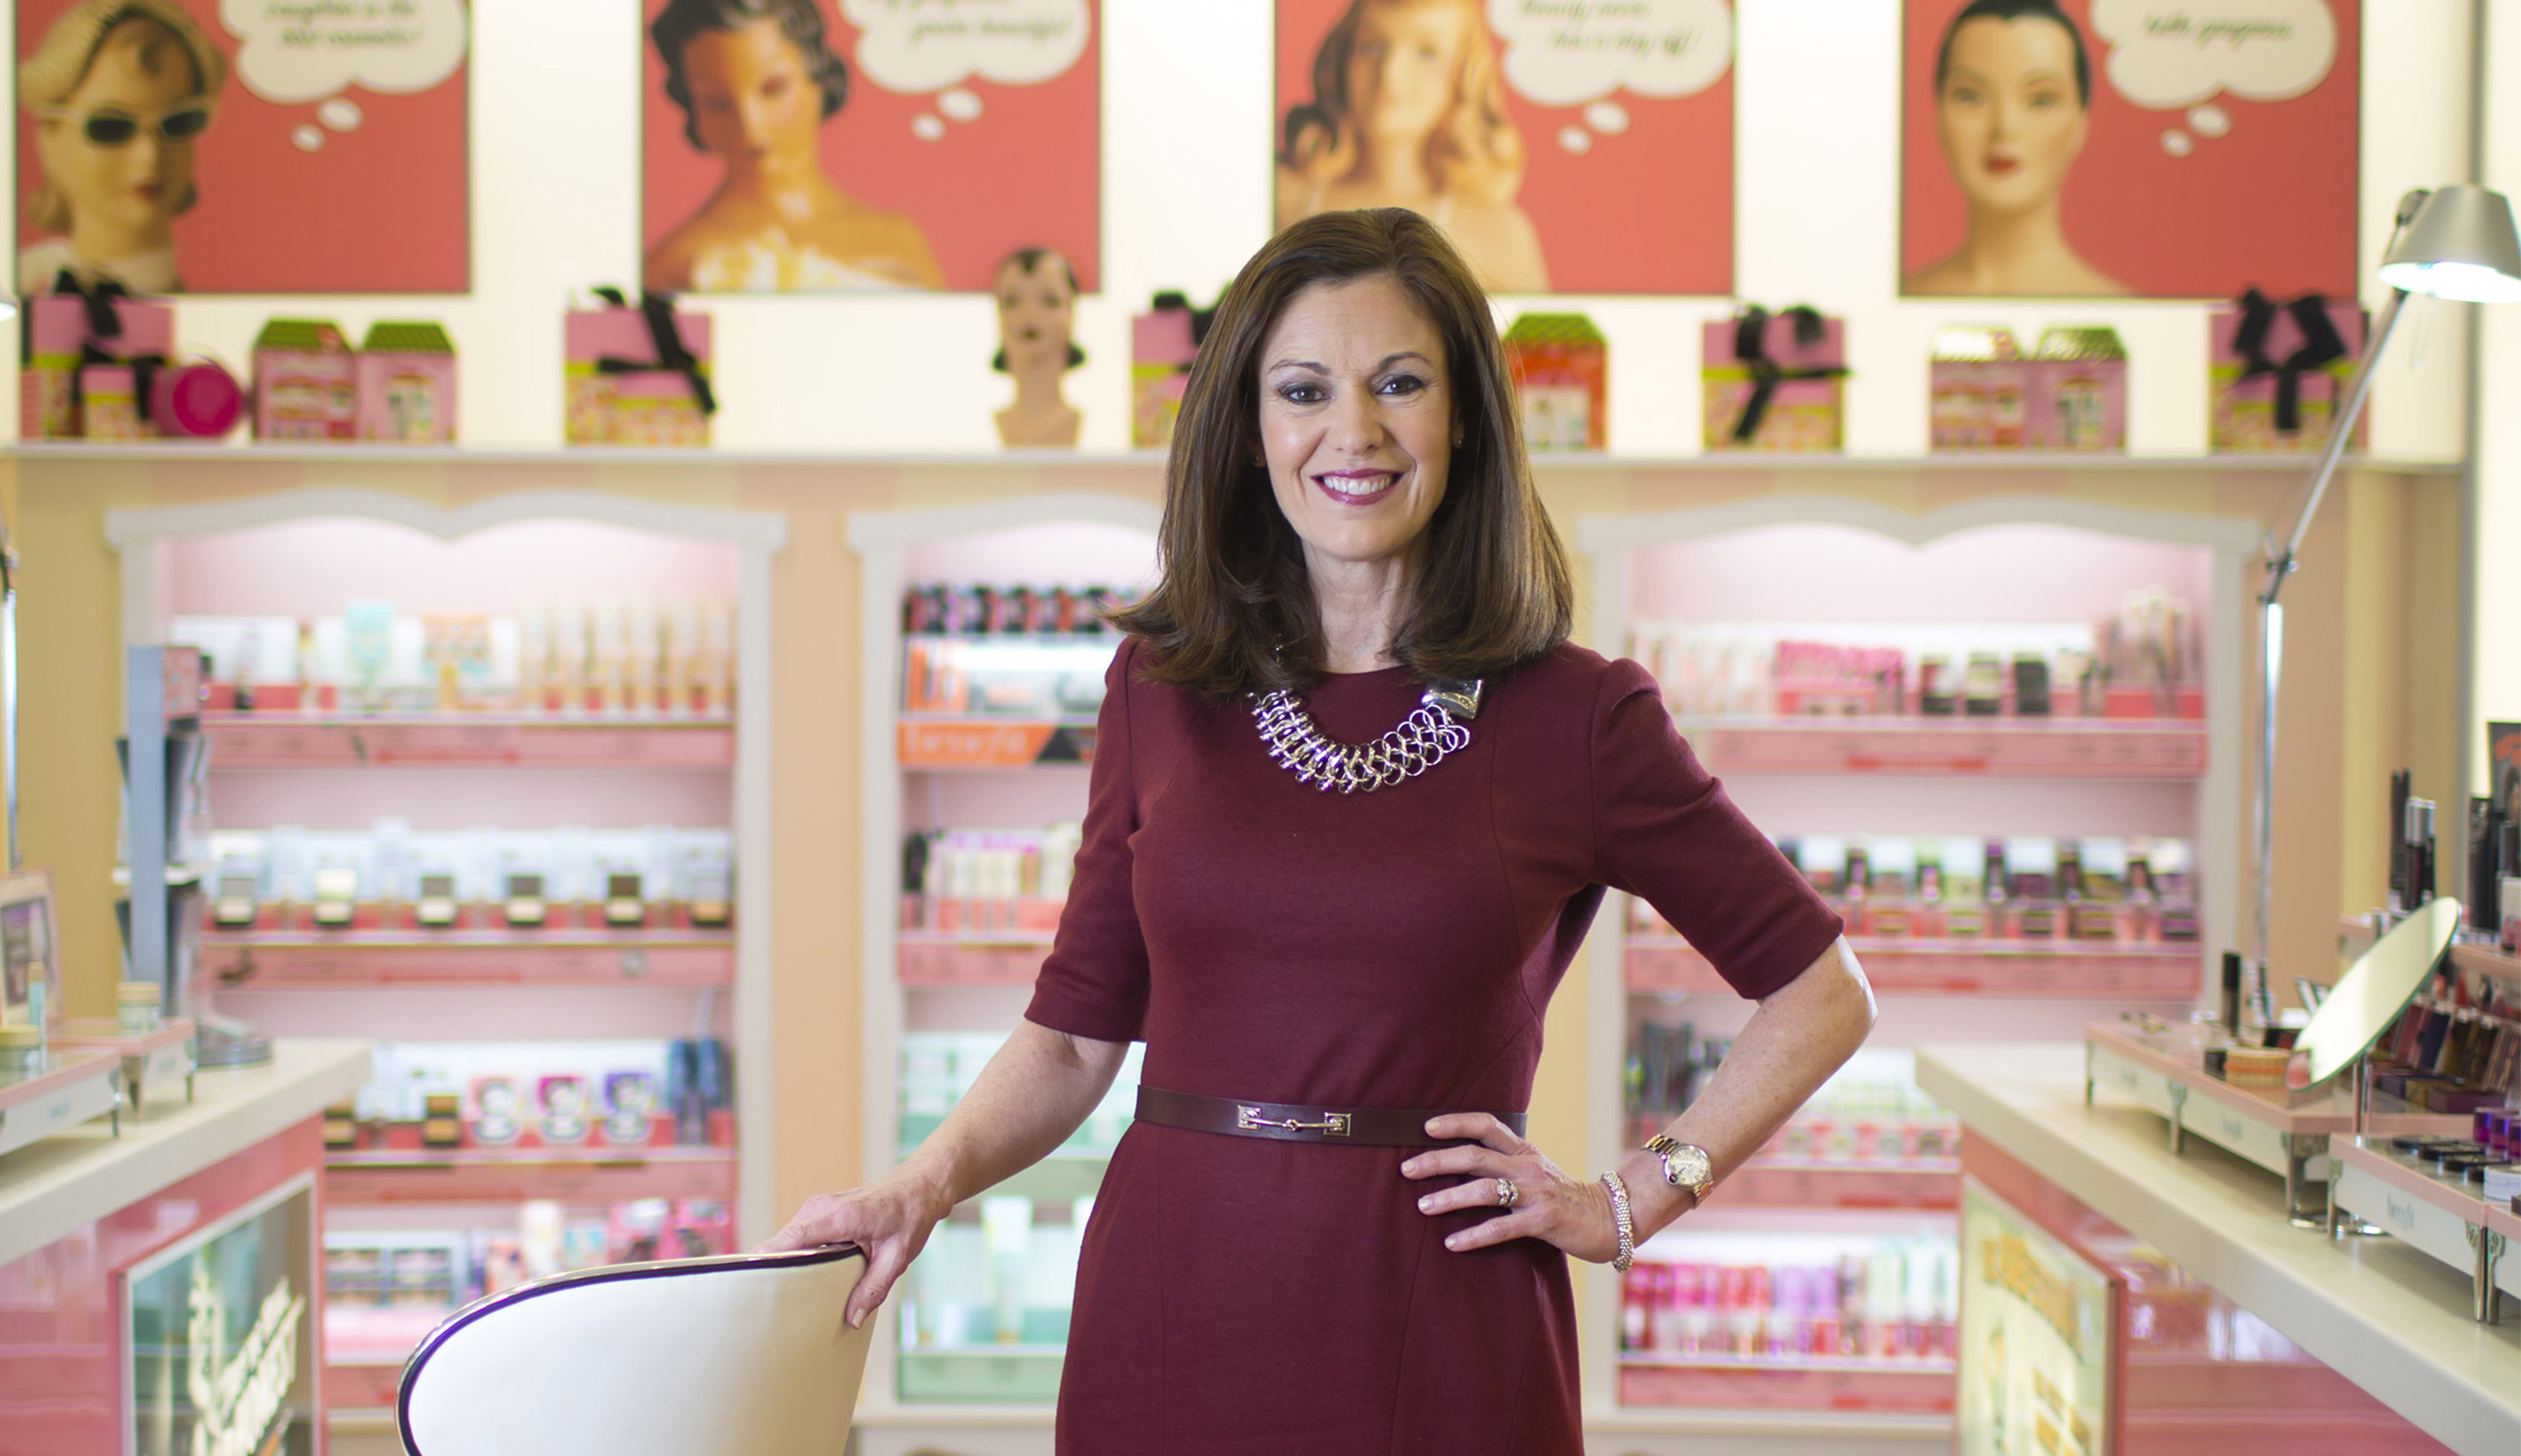 Jan. 15, 2015 - Chicago, IL, USA - Ulta CEO Mary Dillon poses for a portrait on Thursday, Jan. 15, 2015 at their Roosevelt Collection store in Chicago. (Credit Image: © Brian Cassella/TNS/ZUMA Wire)